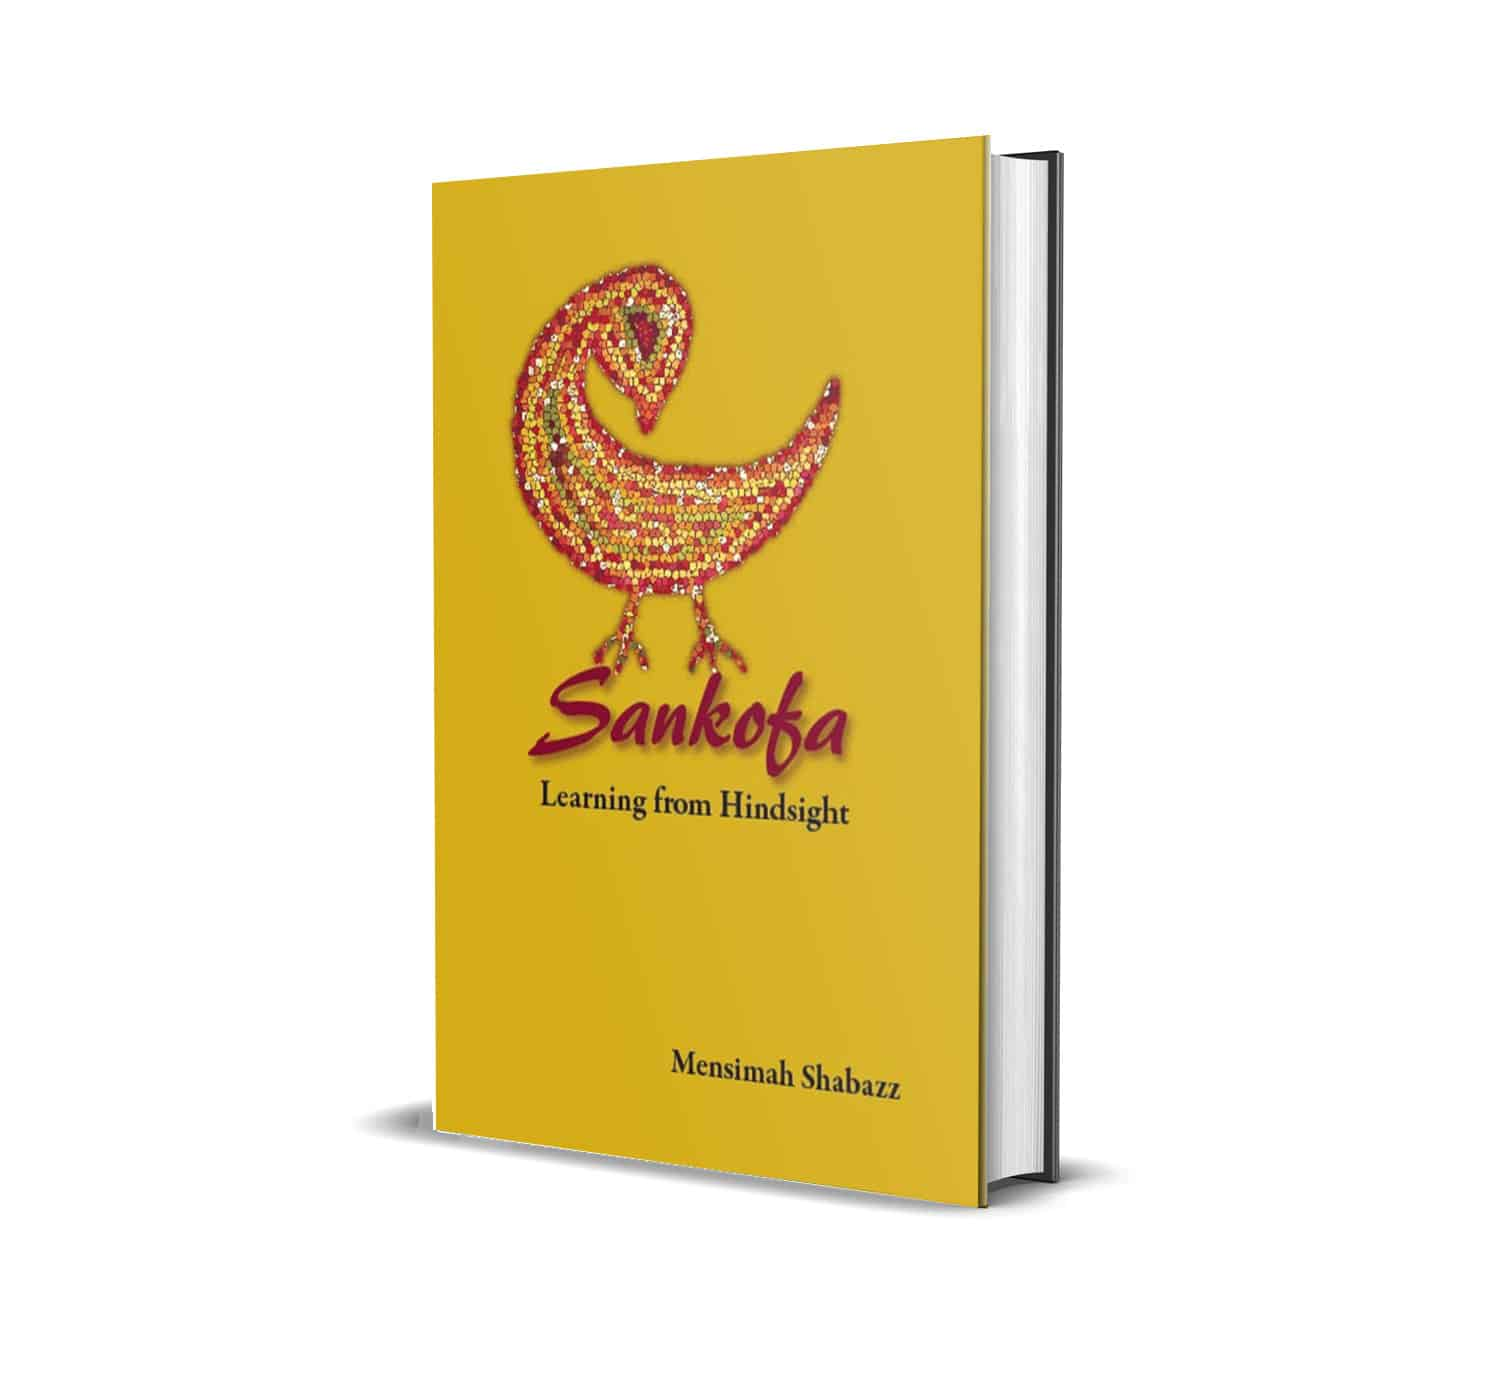 Sankofa Book by Mensimah Shabazz